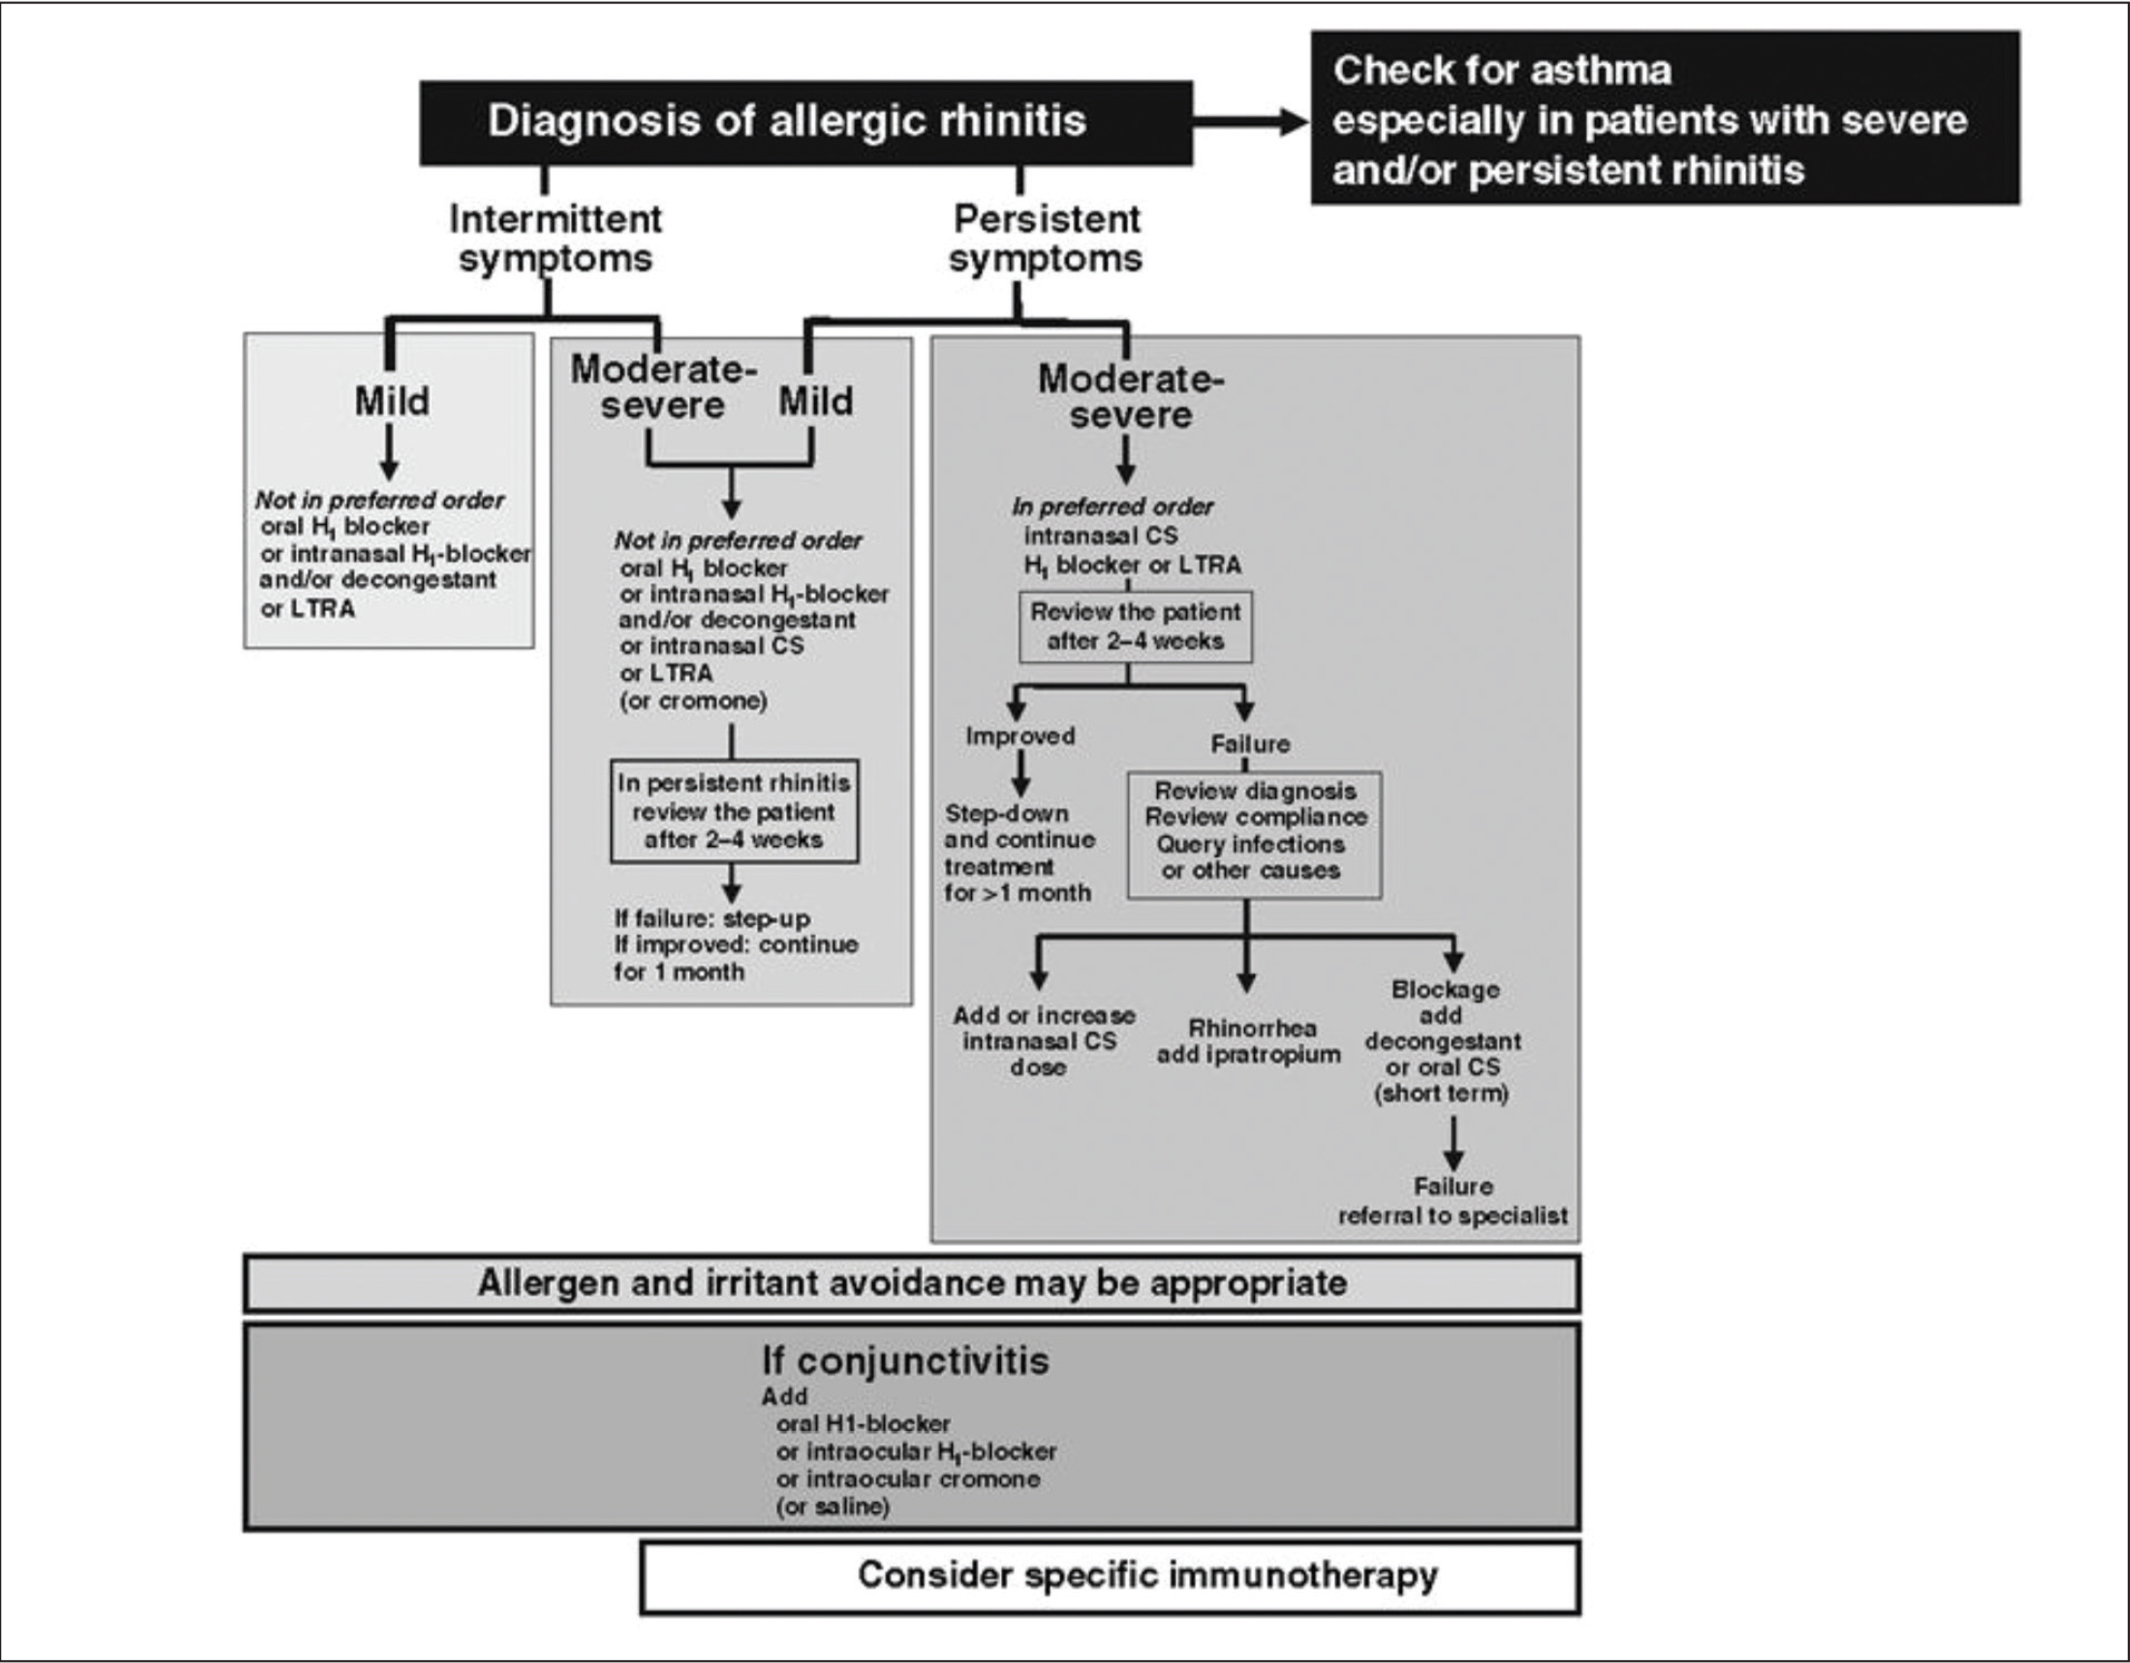 Algorithm for the diagnosis of allergic rhinitis. Reprinted from Bousquet et al.,6 with permission of John Wiley and Sons.